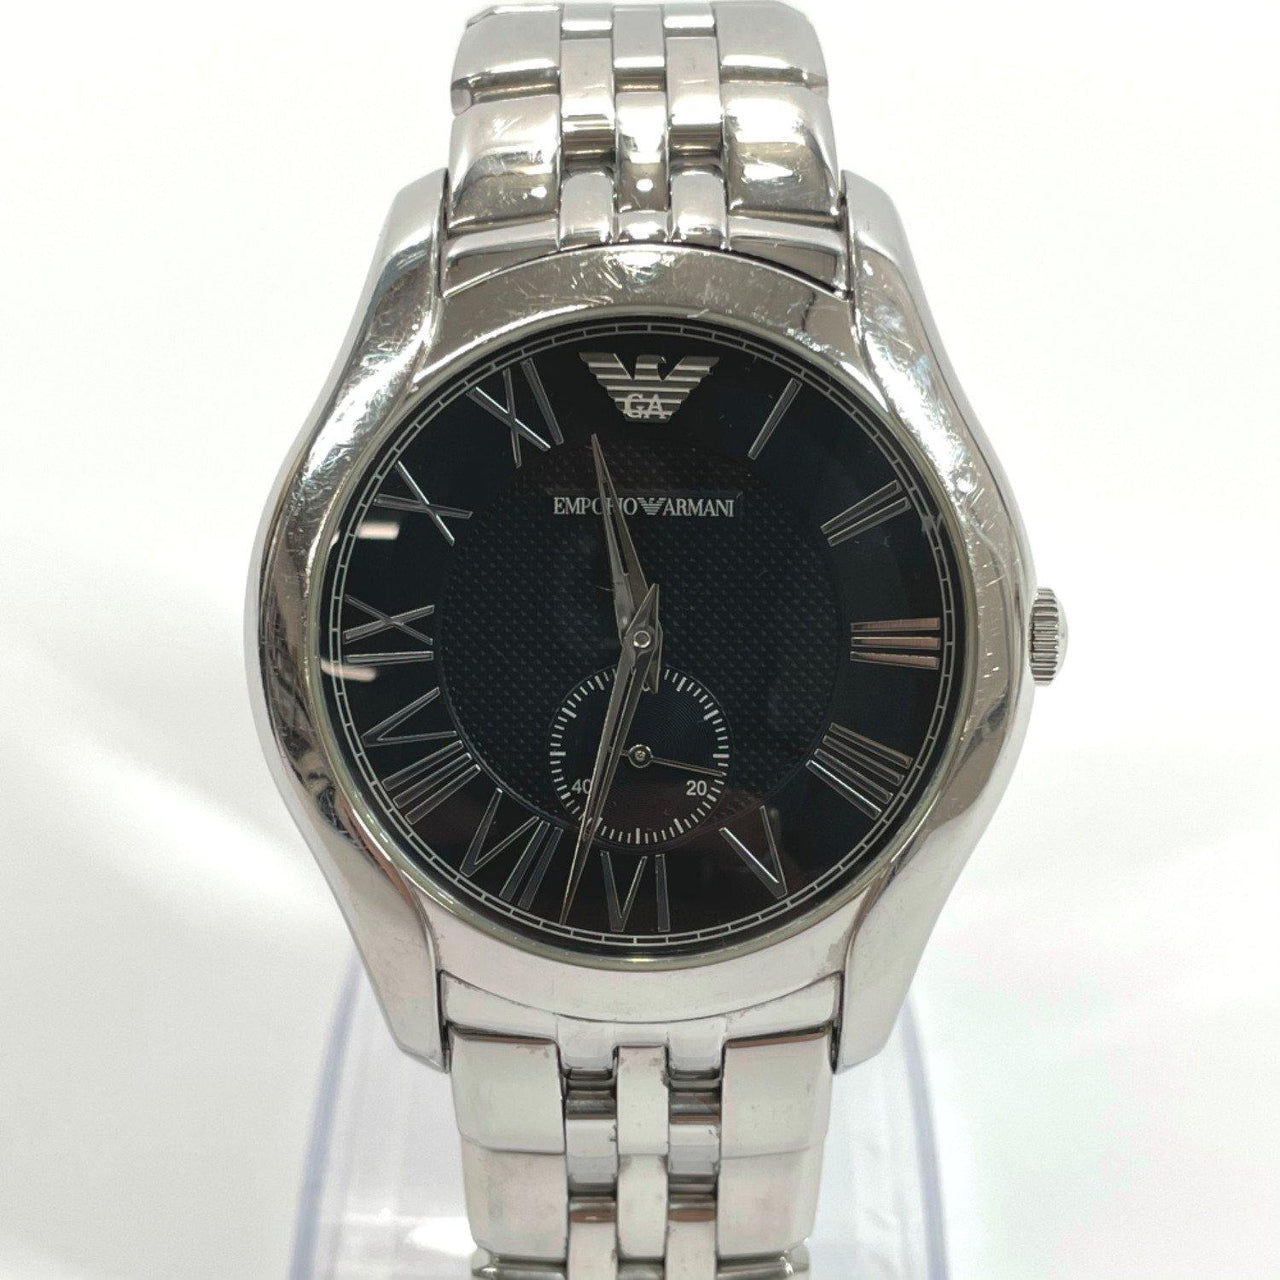 Emporio Armani Watches AR-1706 quartz Stainless Steel Silver mens Used